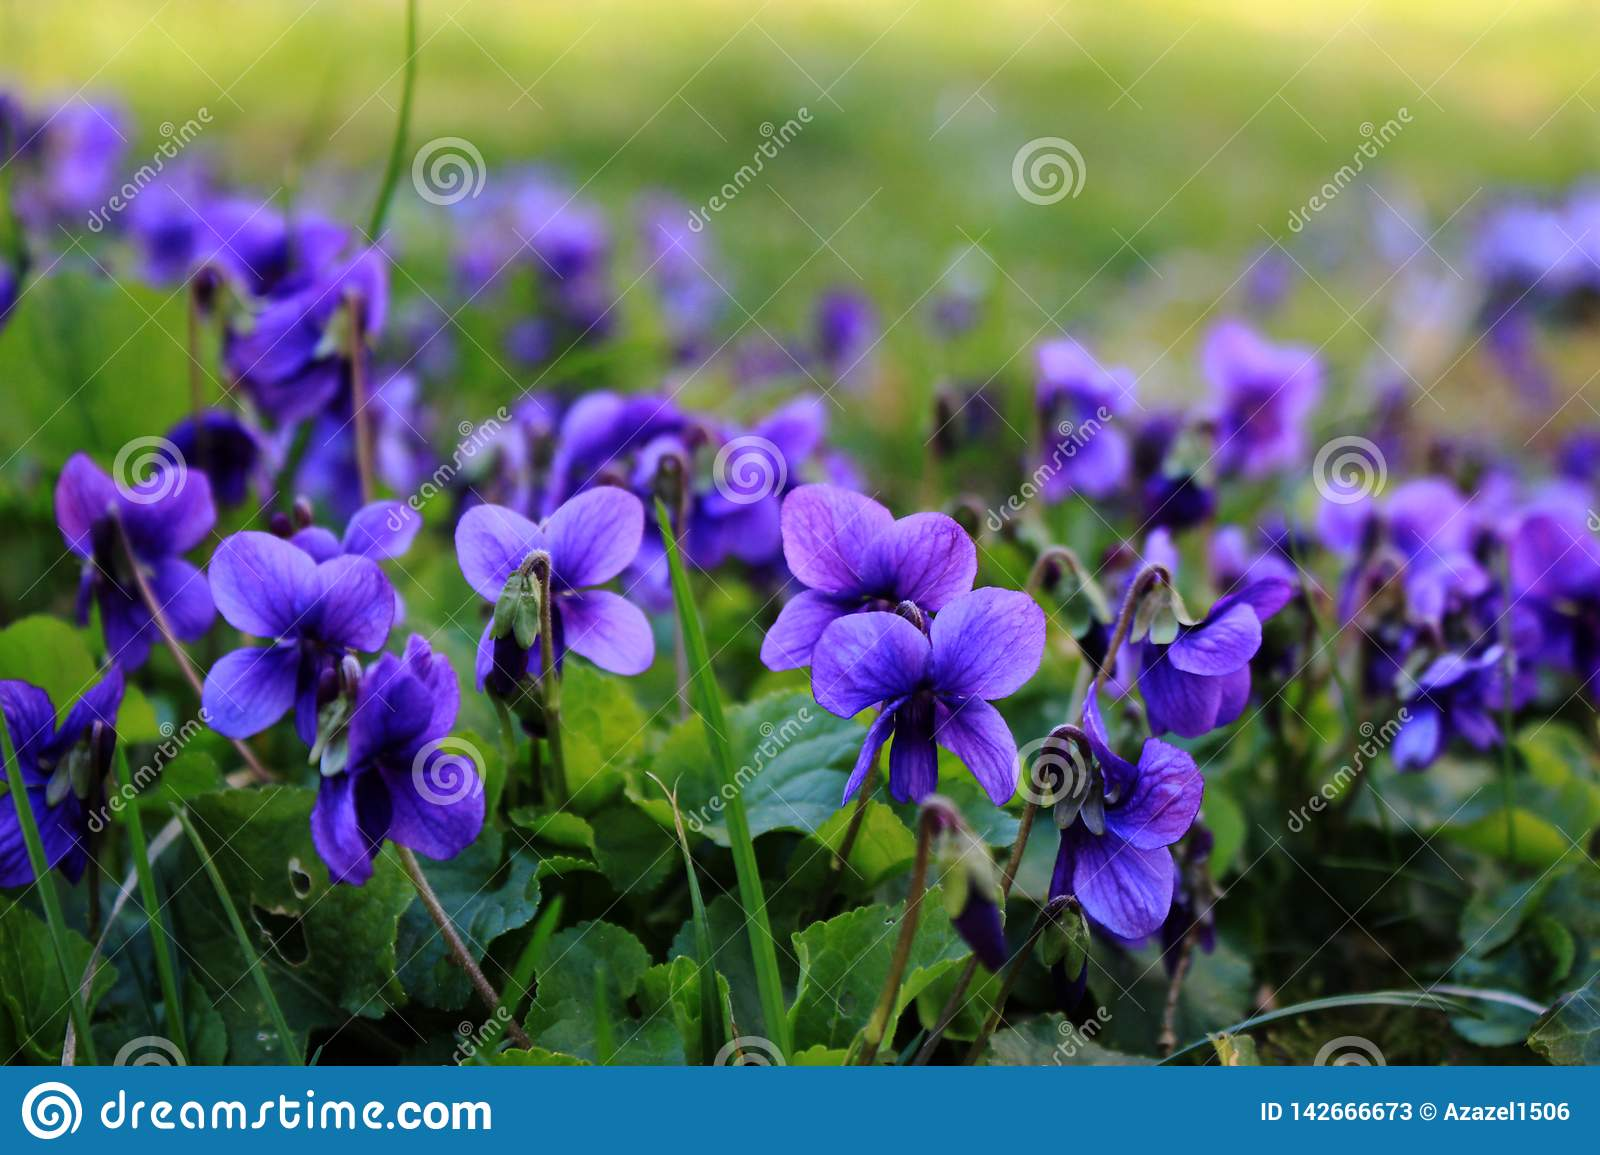 bright purple flowers on the grass